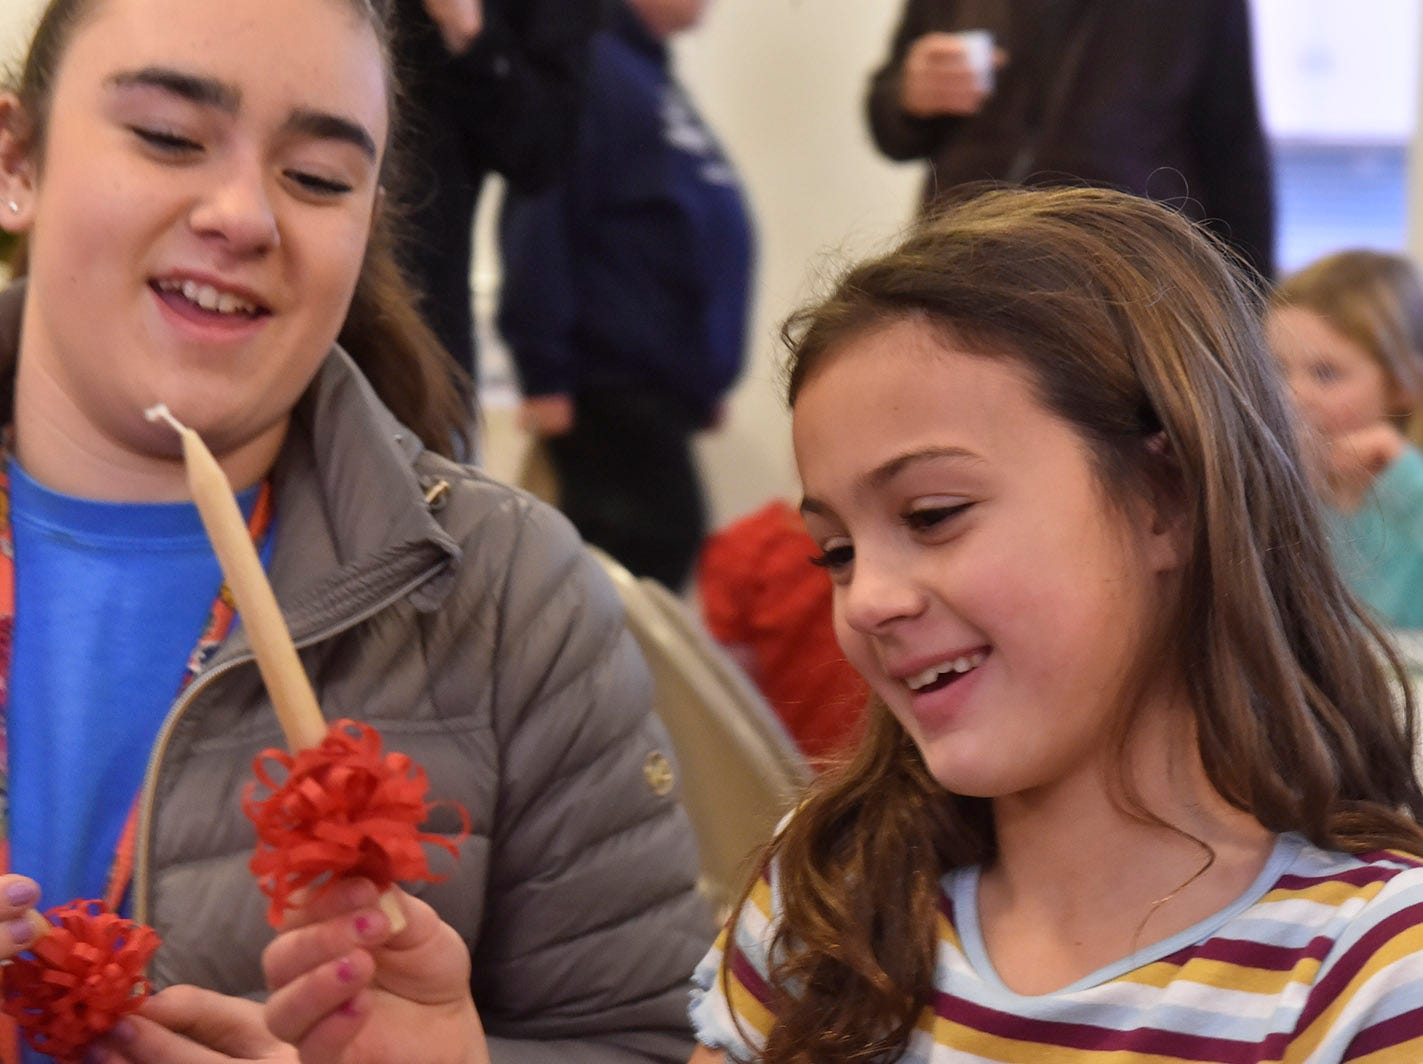 Zoie and Paizley Gill, both of Appleton, learn how to assemble Advent candles at the Ephraim Moravian Church's ADVENTure program during Christmas in the Village in Ephraim on Saturday, Dec. 1, 2018. Tina M. Gohr/USA TODAY NETWORK-Wisconsin